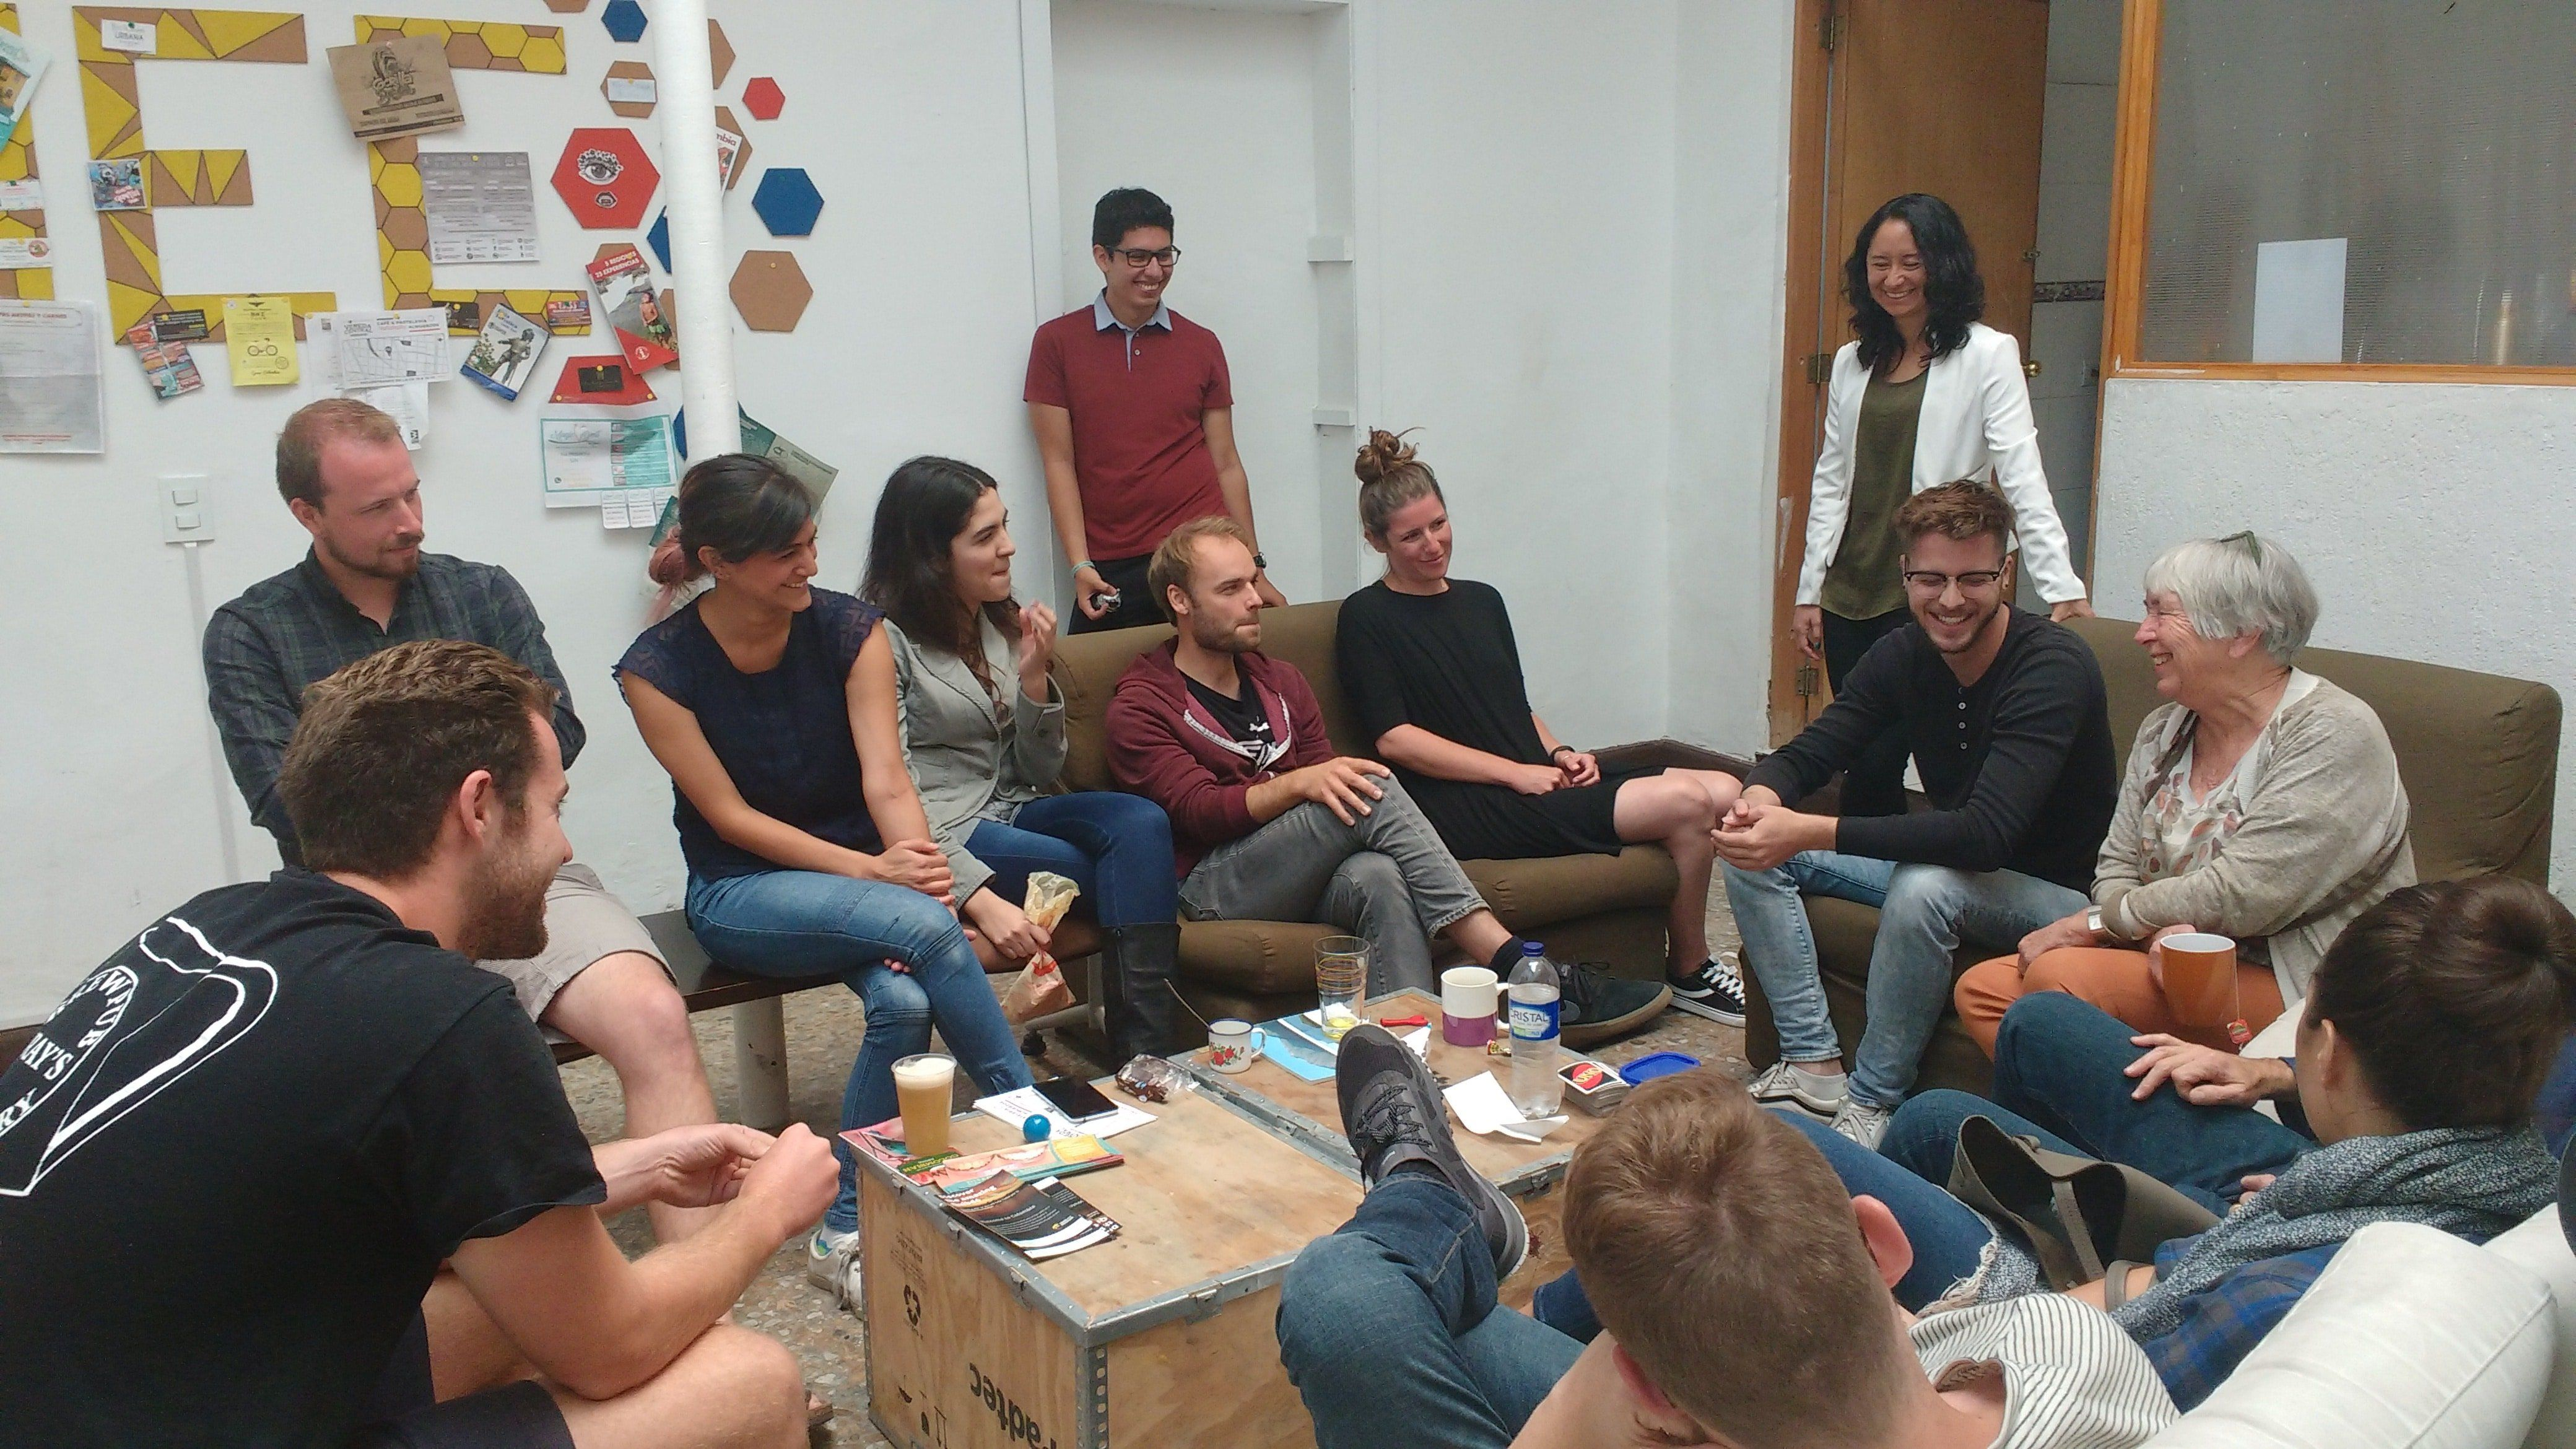 All people together laughing for a while, share experiences with a nice conversation